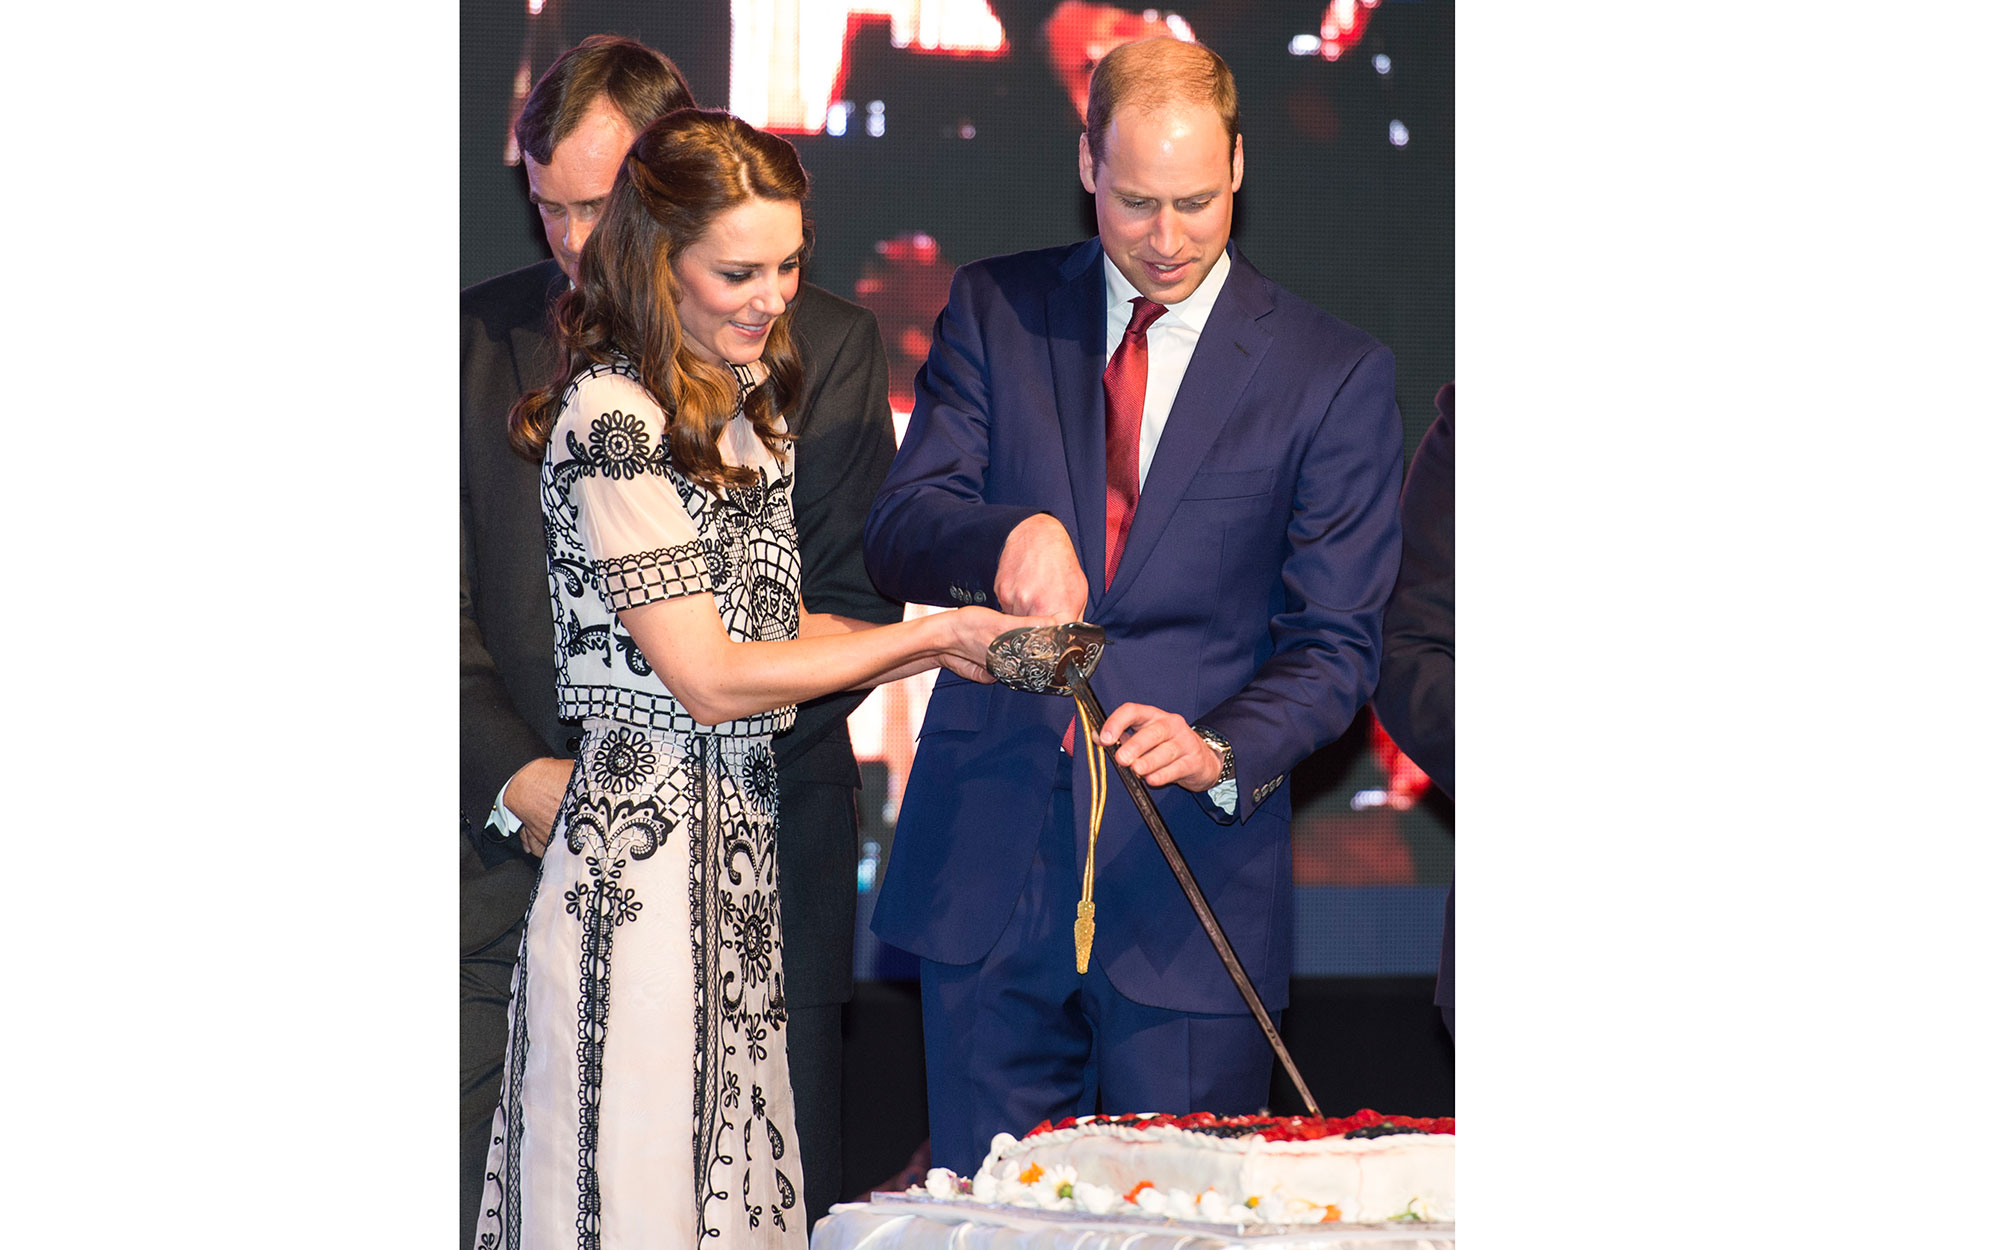 Prince William and Kate Middleton Embark on their Royal Tour of India and Bhutan: Attending a Birthday Party for the Queen